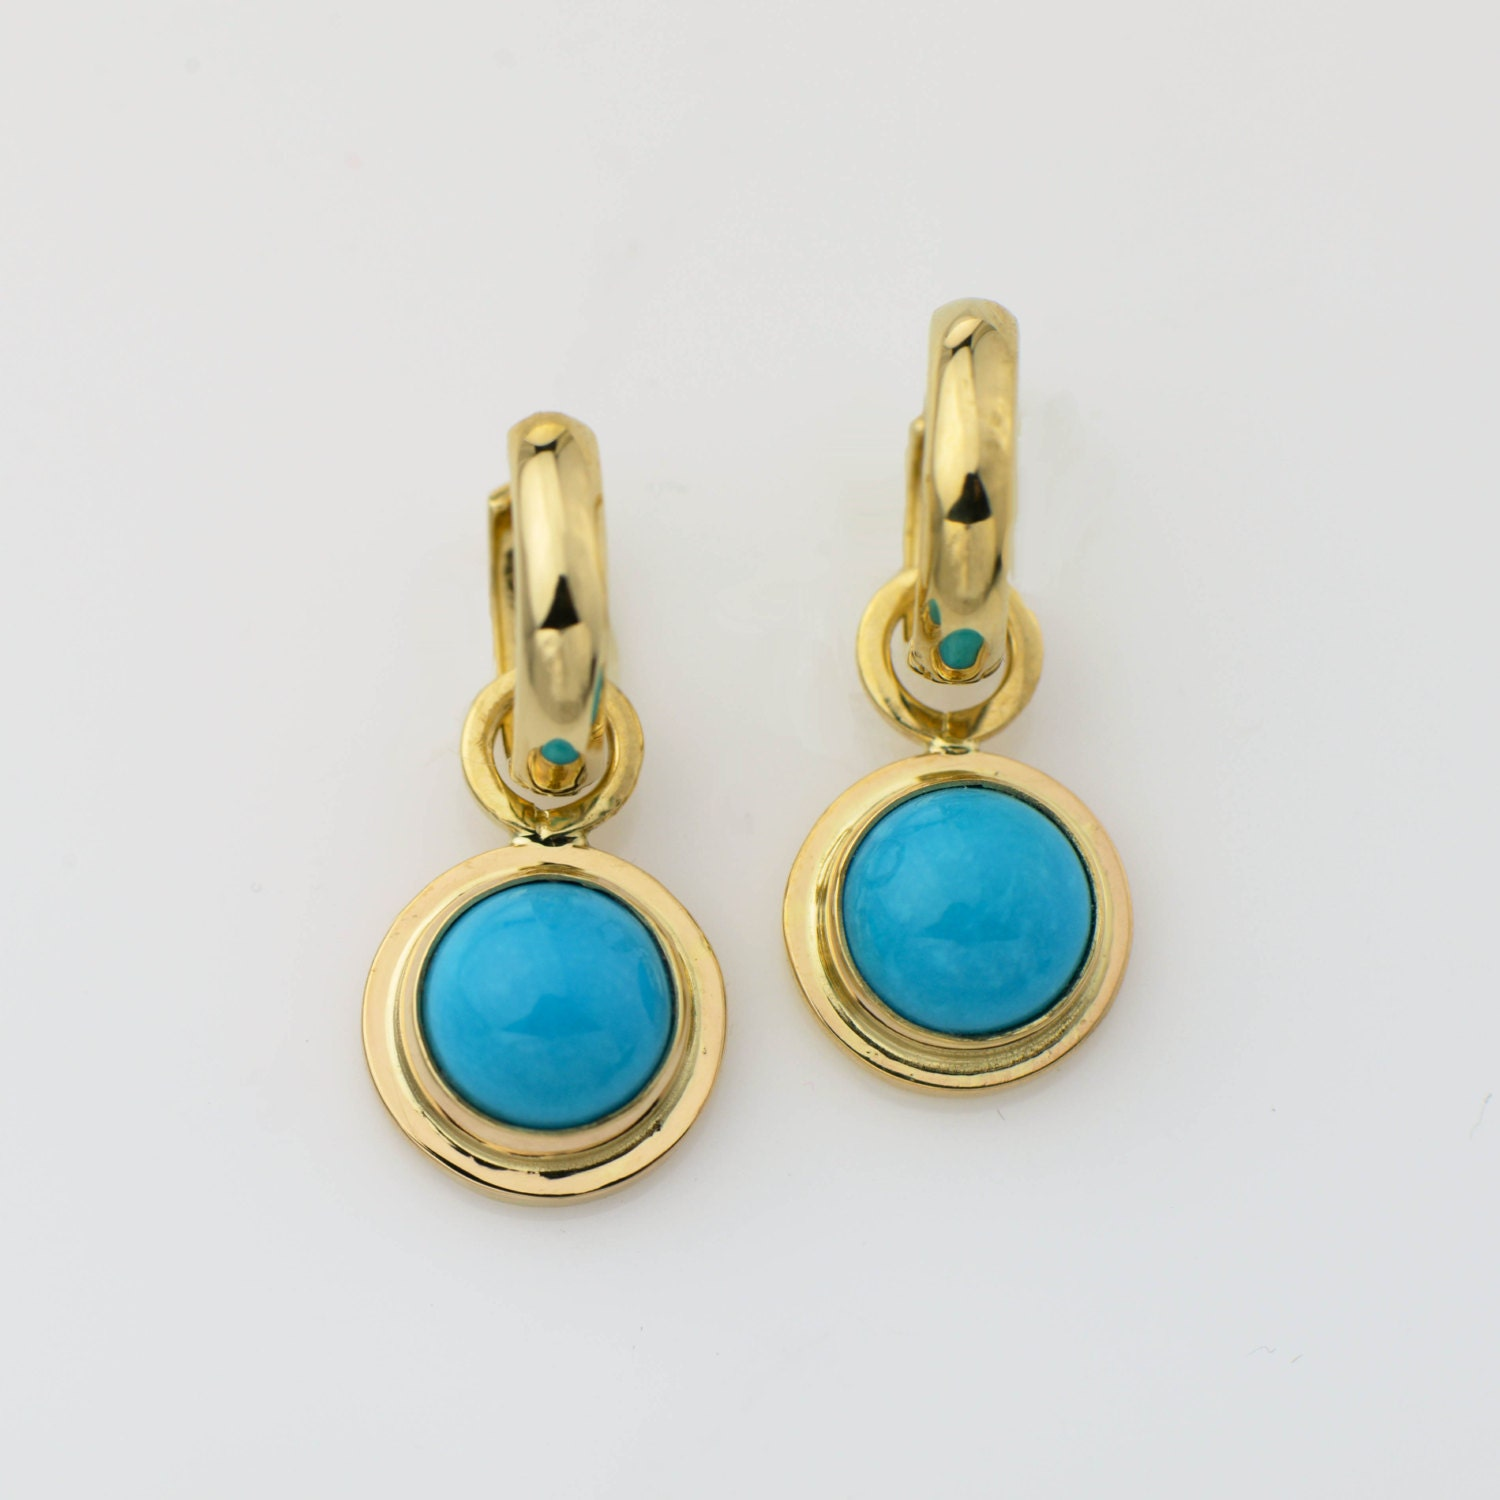 14k gold turquoise earrings sleeping beauty turquoise jewelry. Black Bedroom Furniture Sets. Home Design Ideas